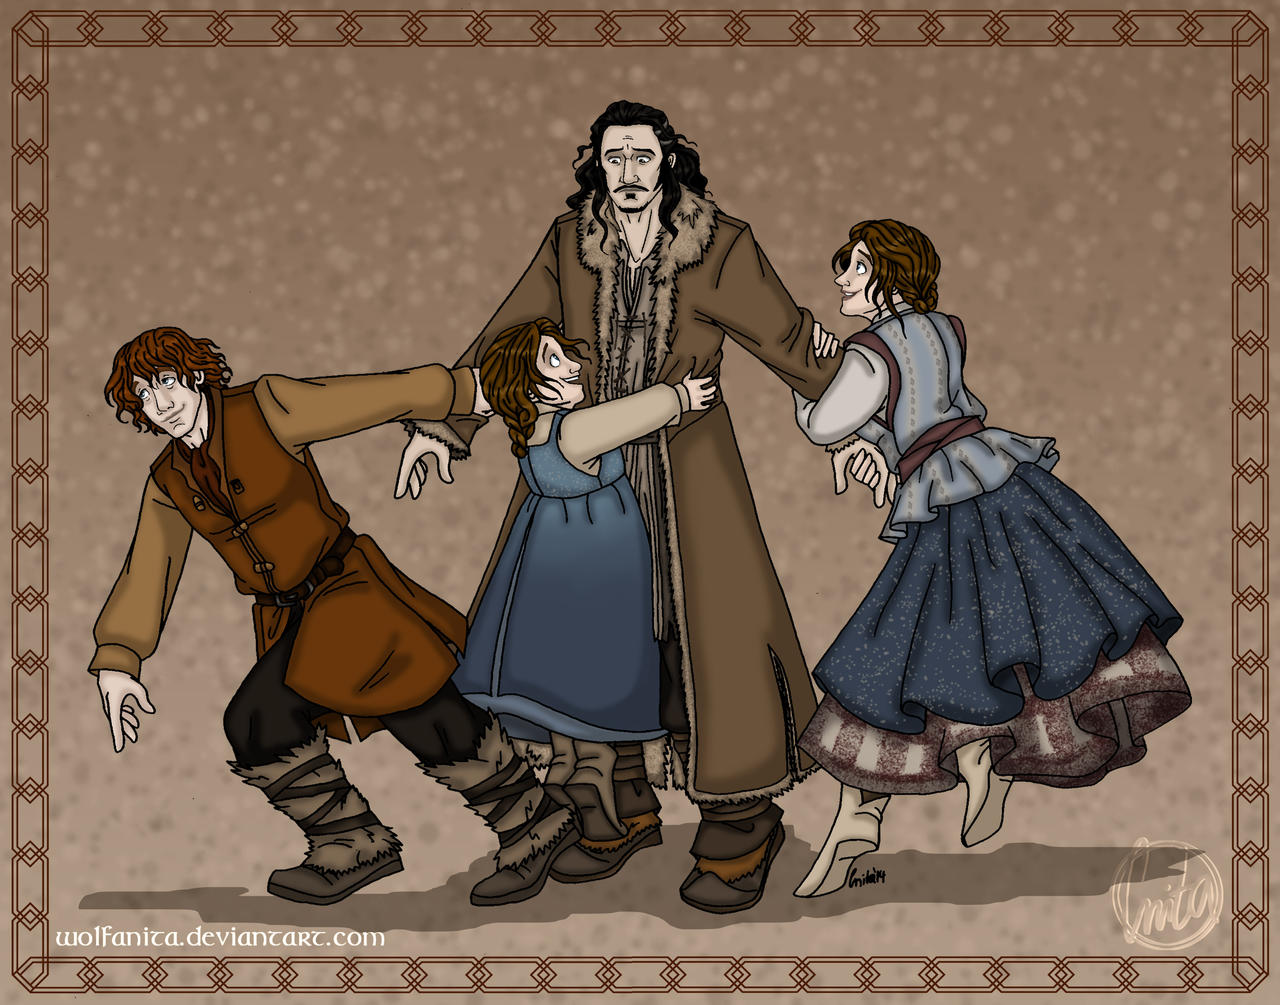 The Hobbit: Daddy! Part Three: Much Sought-After by wolfanita